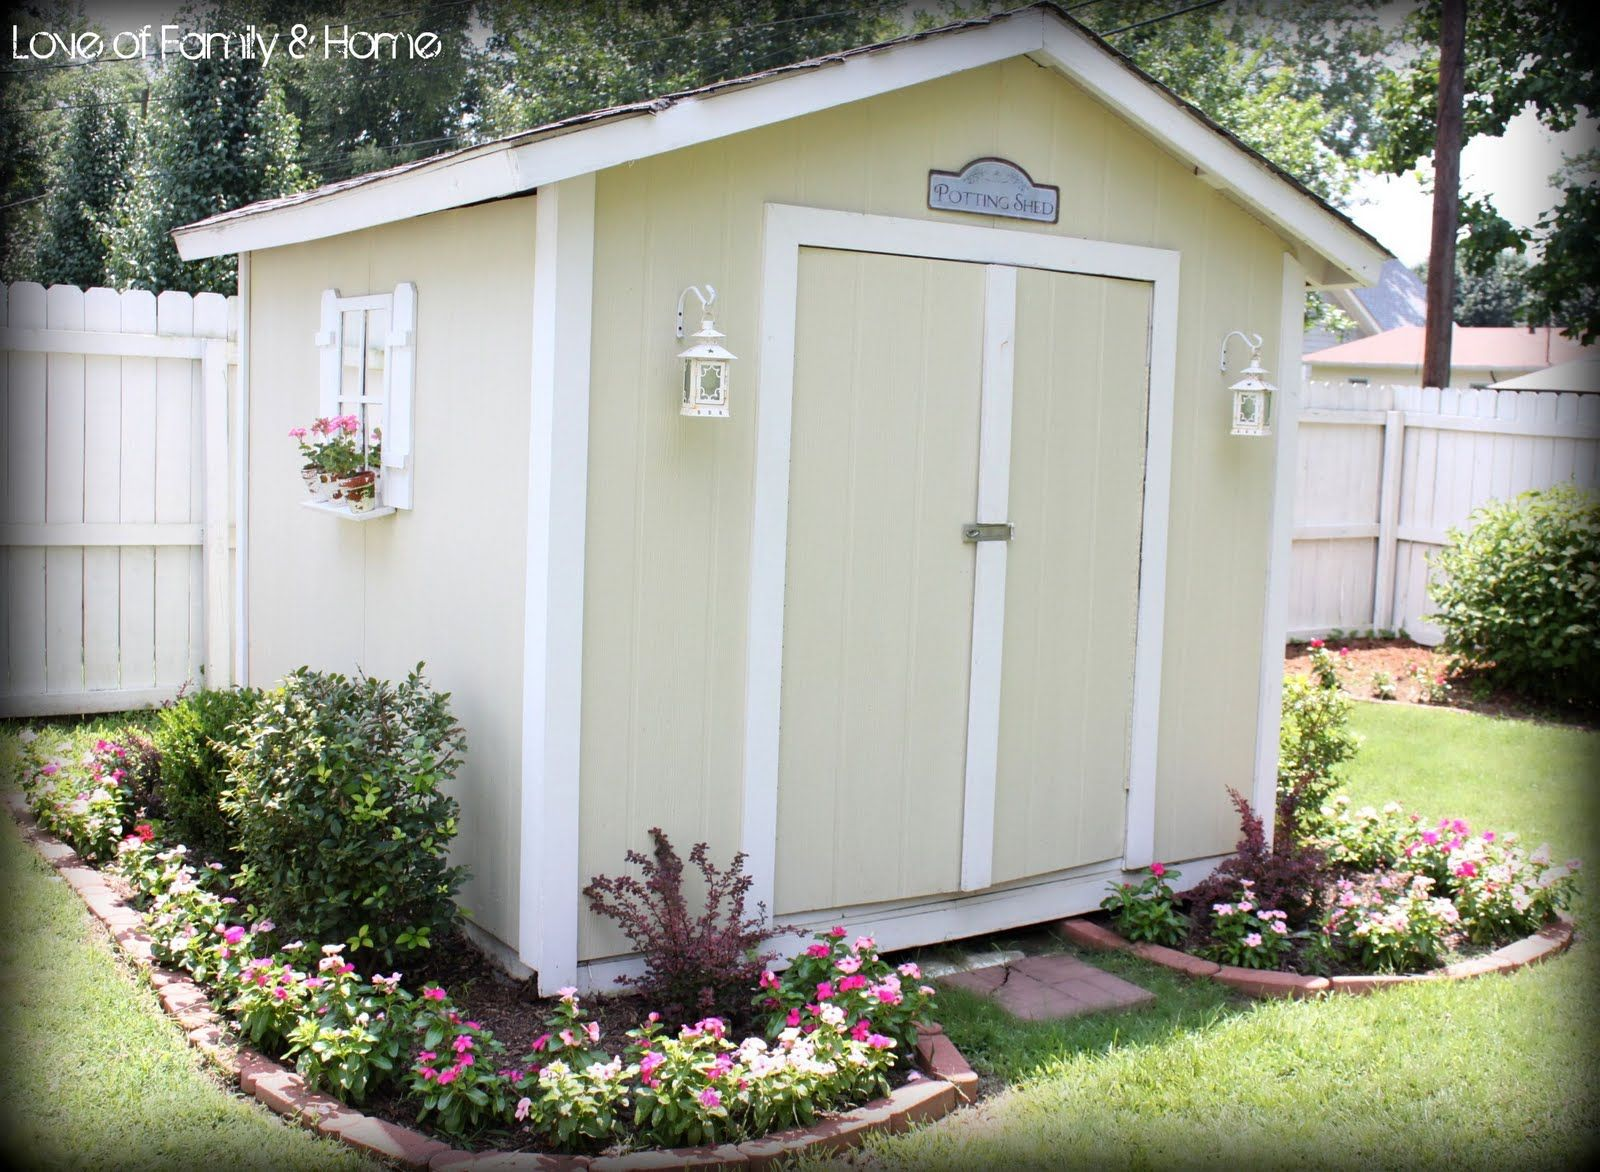 Cute Painted Sheds | Arent my vincas getting nice & big? LOVE these ...